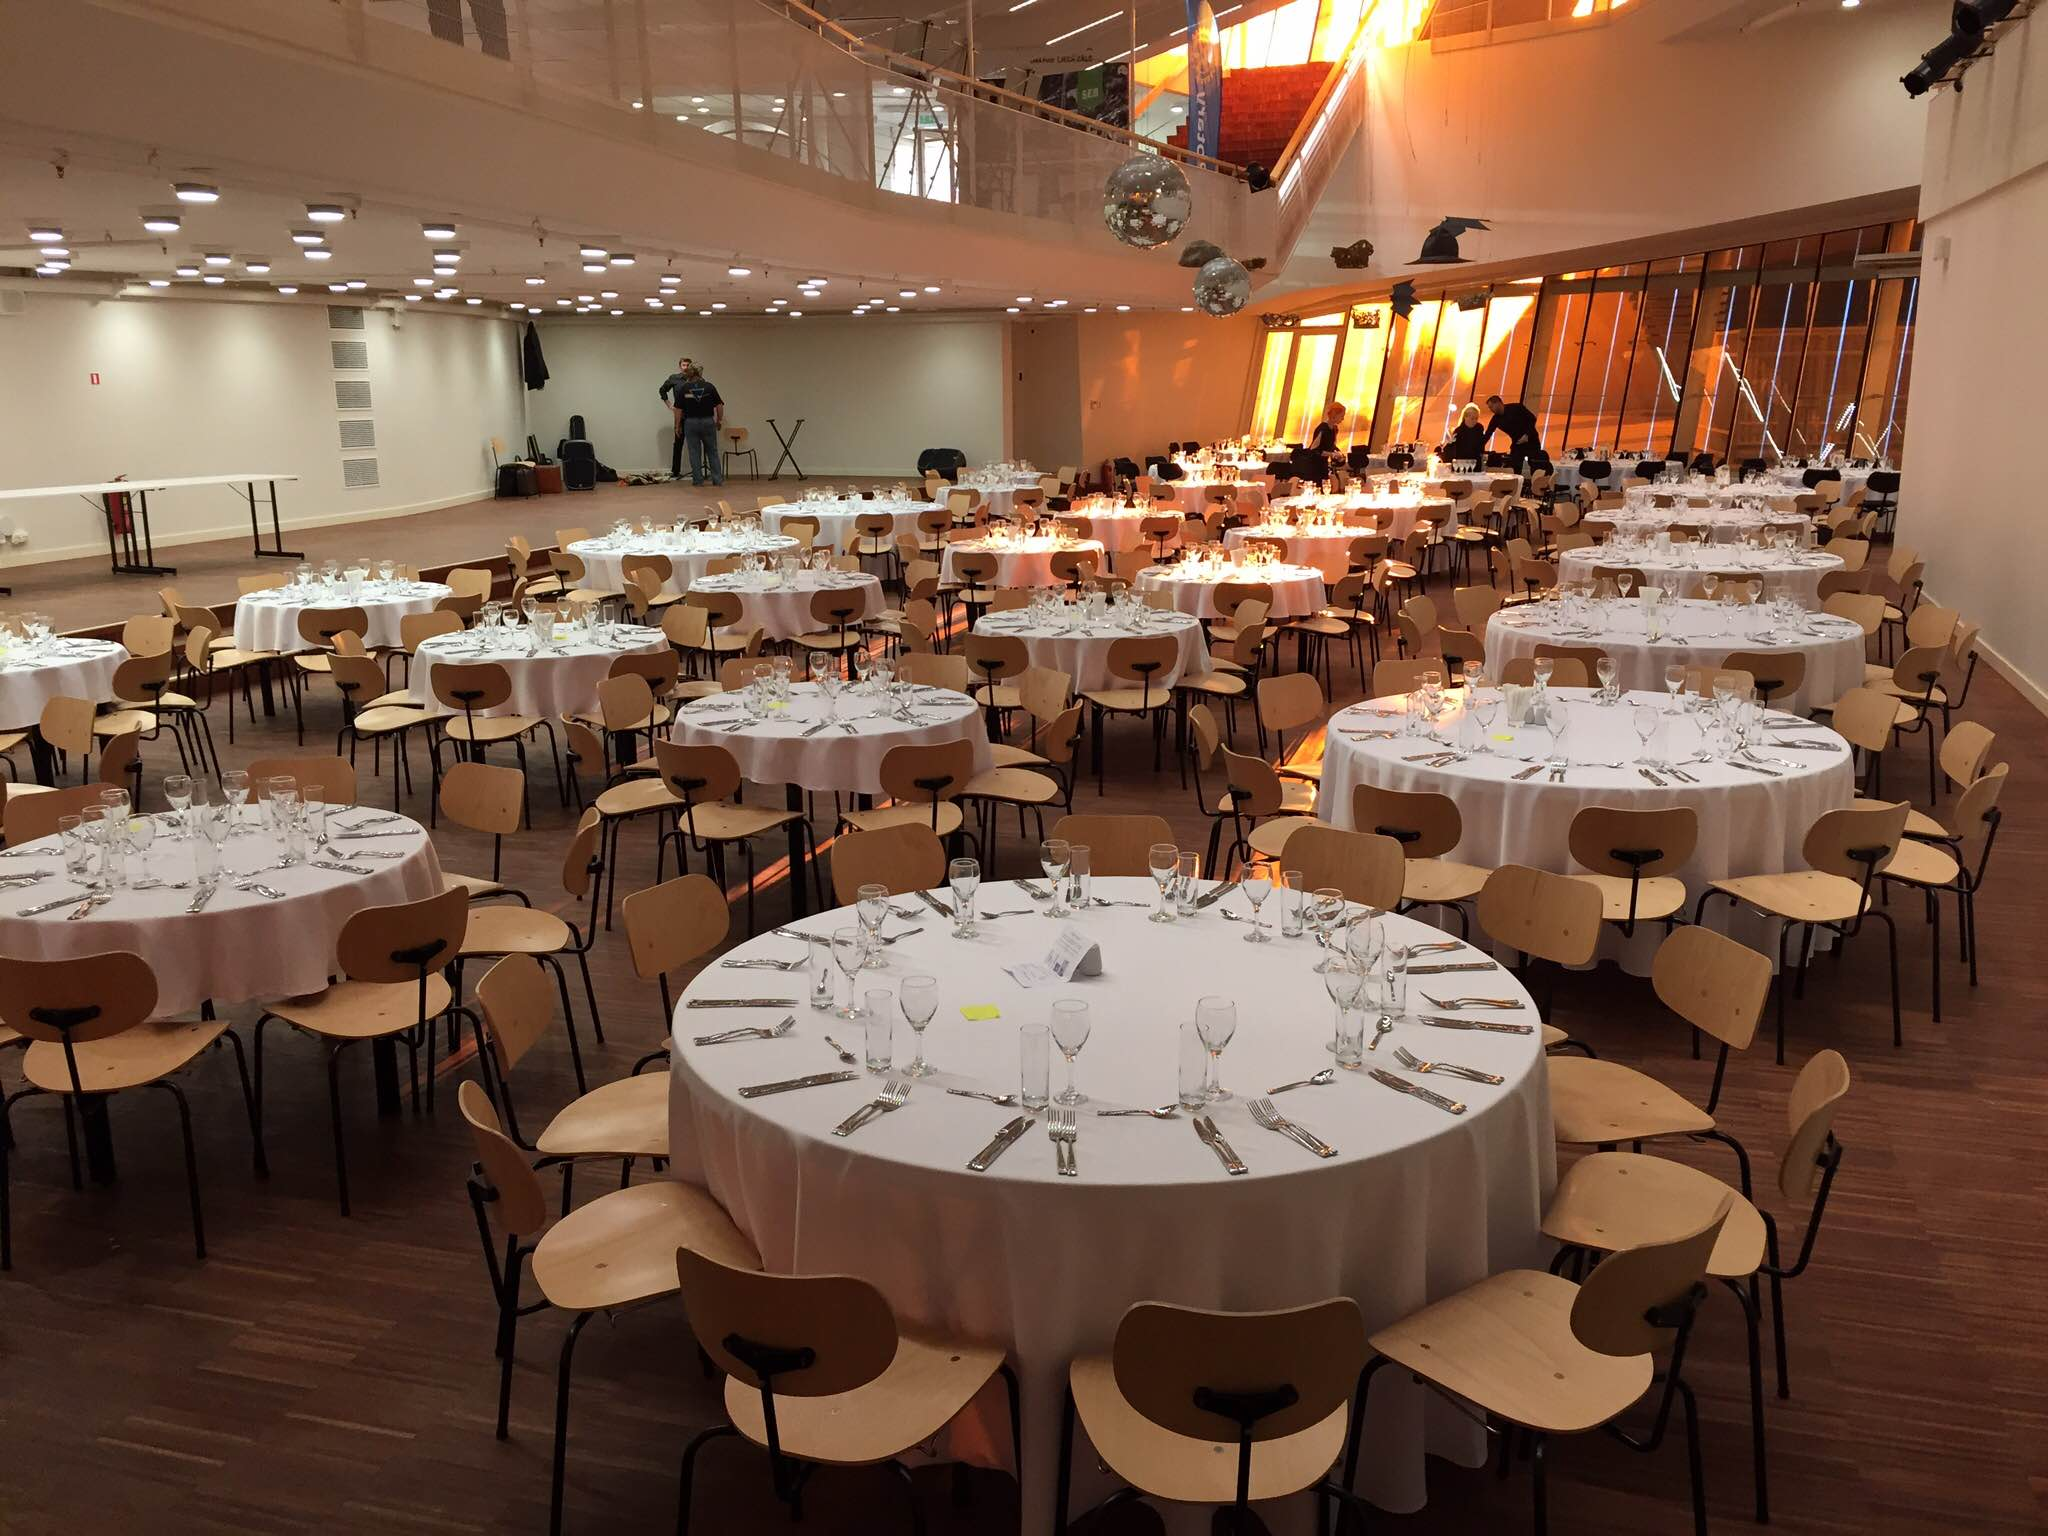 Dinner for 300 guests